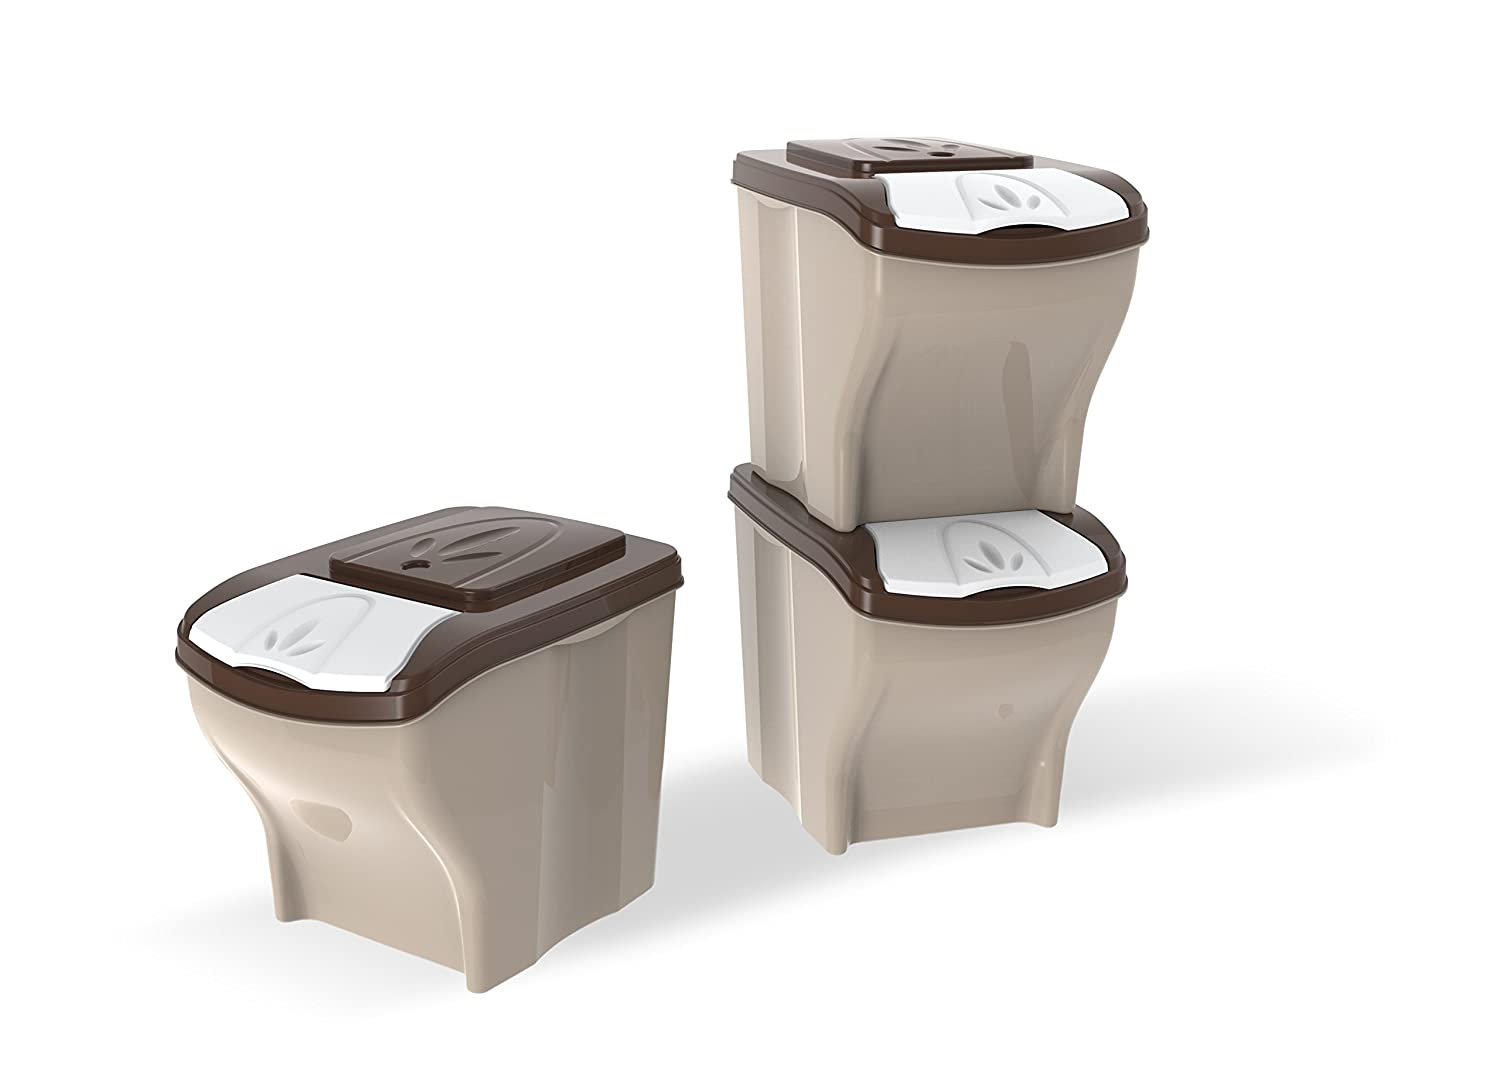 Bama 40295 20 Litre Poker Pet Container, Set of 3, Brown